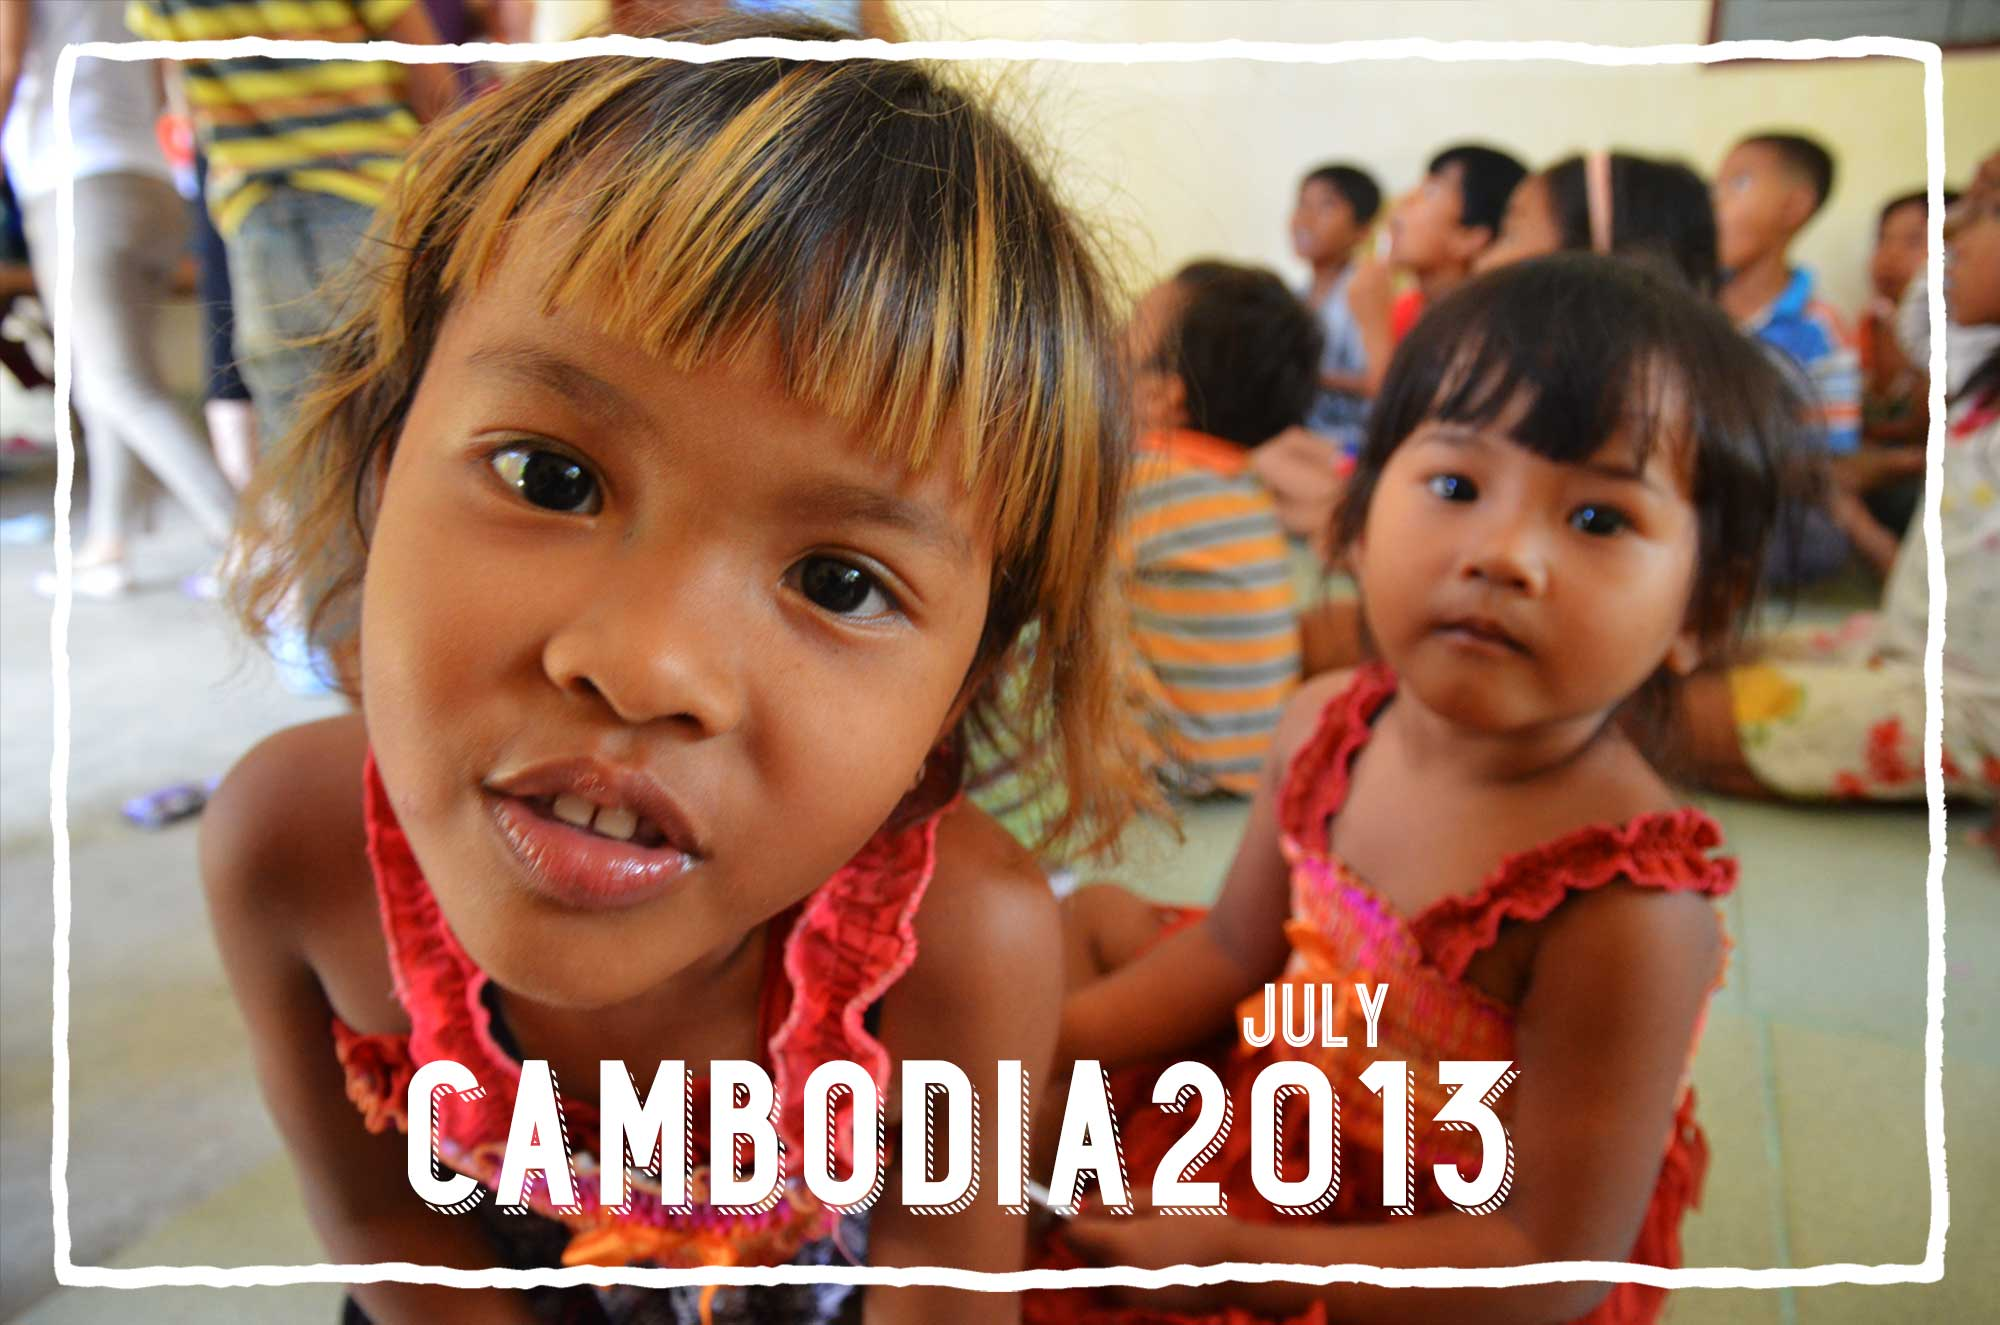 CAMBODIA July 2013  with Solid Rock Ministry